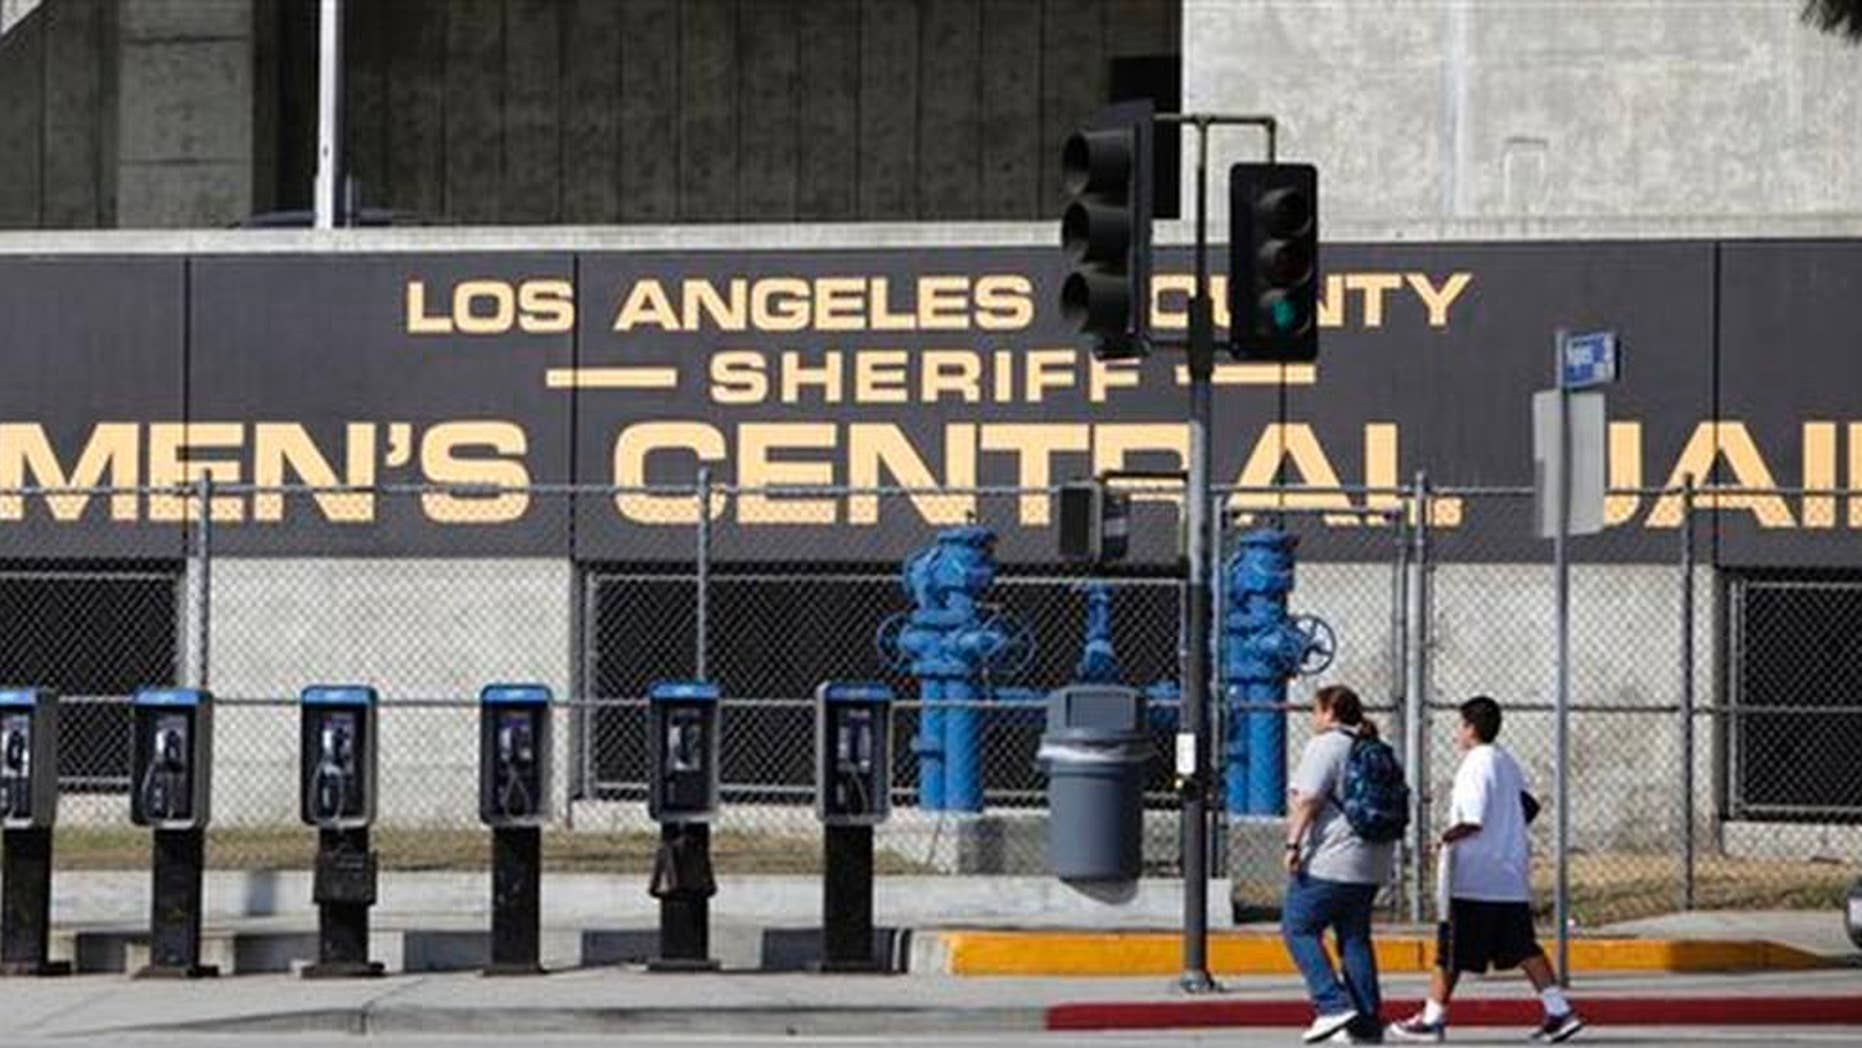 This Wednesday, Sept. 28, 2011 photo shows the Los Angeles County Sheriff's Men's Central Jail facility in Los Angeles. The number of arrests by police in California has plunged in recent years, but that doesn't necessarily represent good news on crime, according to an analysis published Saturday, April 1. The state saw 1.5 million arrests for misdemeanors and felonies in 2015, the most recent year with figures available, according to the Los Angeles Times. (AP Photo/Damian Dovarganes, File)